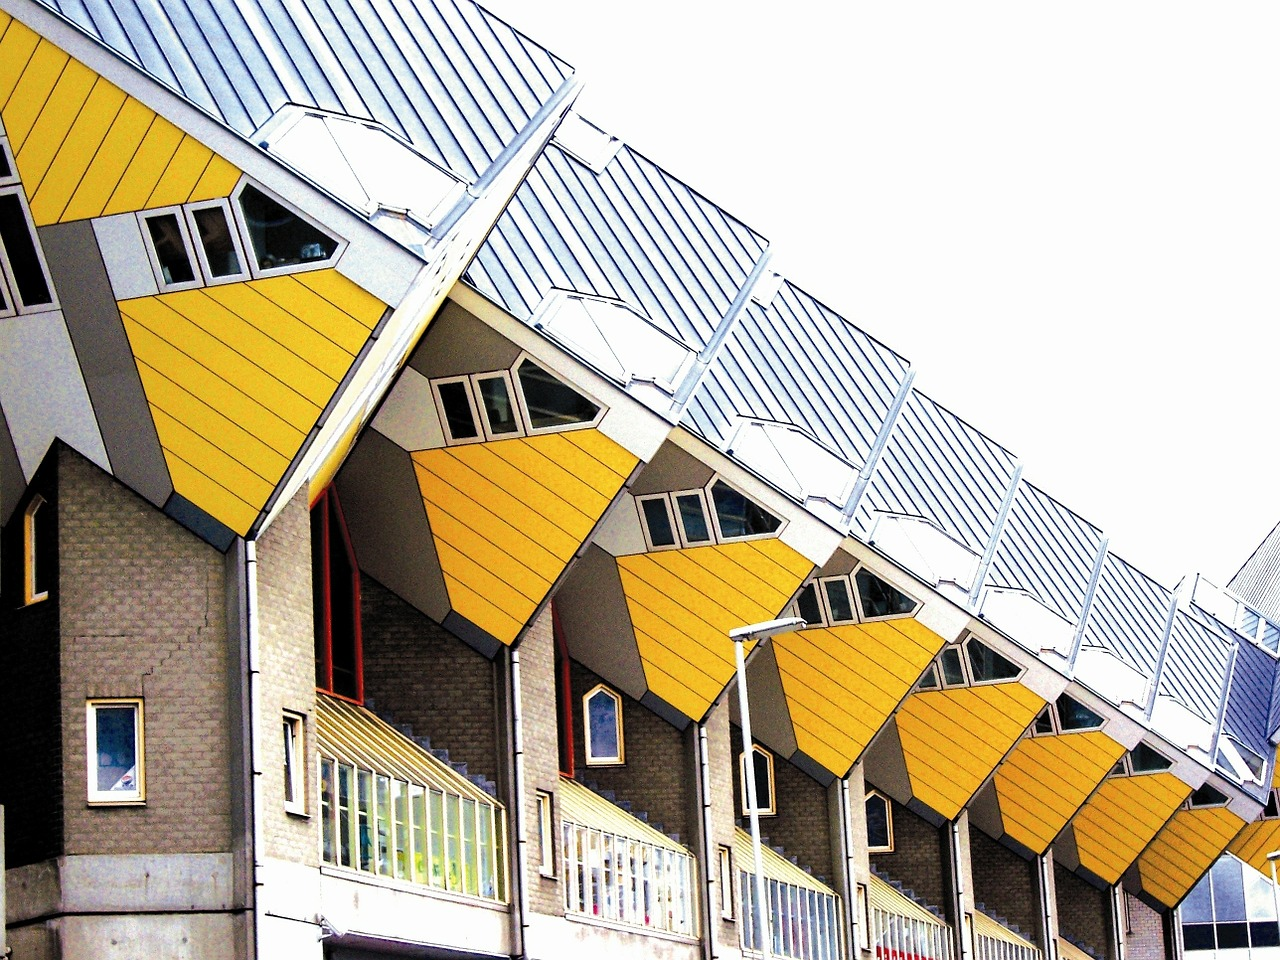 rotterdam cube houses on stilts holland free photo